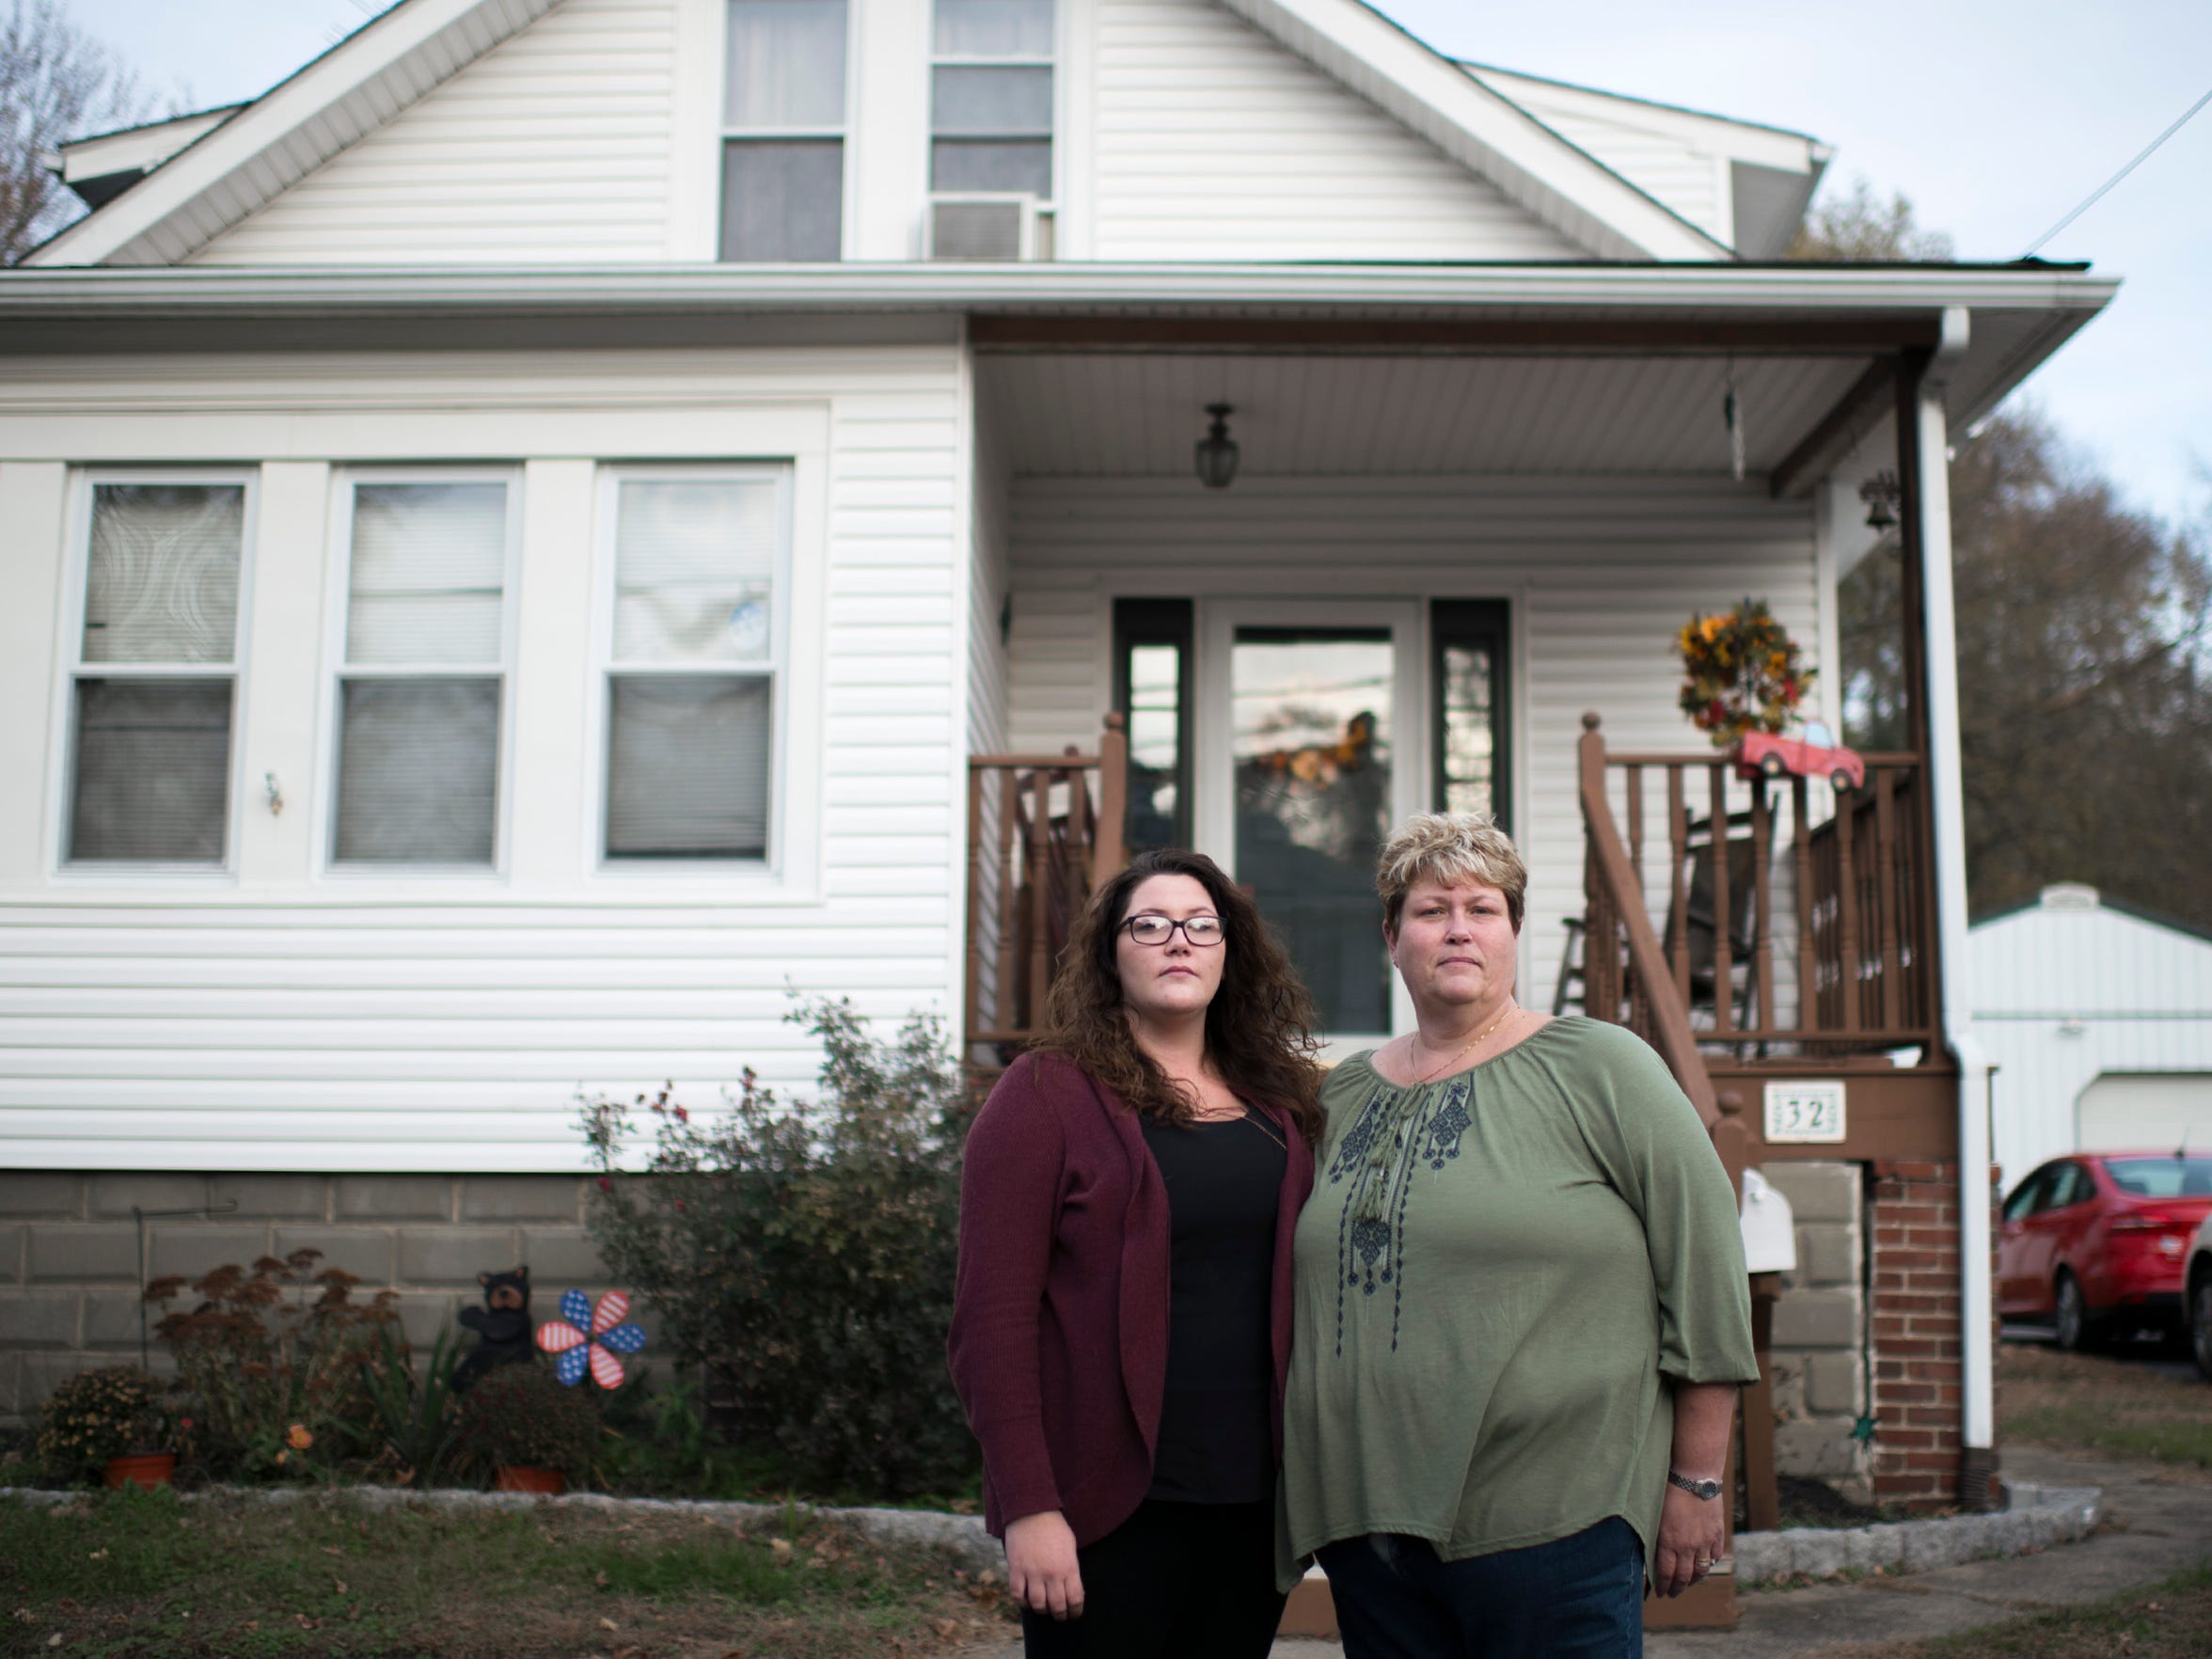 Kasey Maines, left, poses with her mother Debi Maines Tuesday, Nov. 21, 2017 in Gibbstown, New Jersey. Debi Maines, Kasey's mom, is in recovery from co-dependency, and 27-year-old Kasey Maines has been in recovery from heroin addiction for four years.